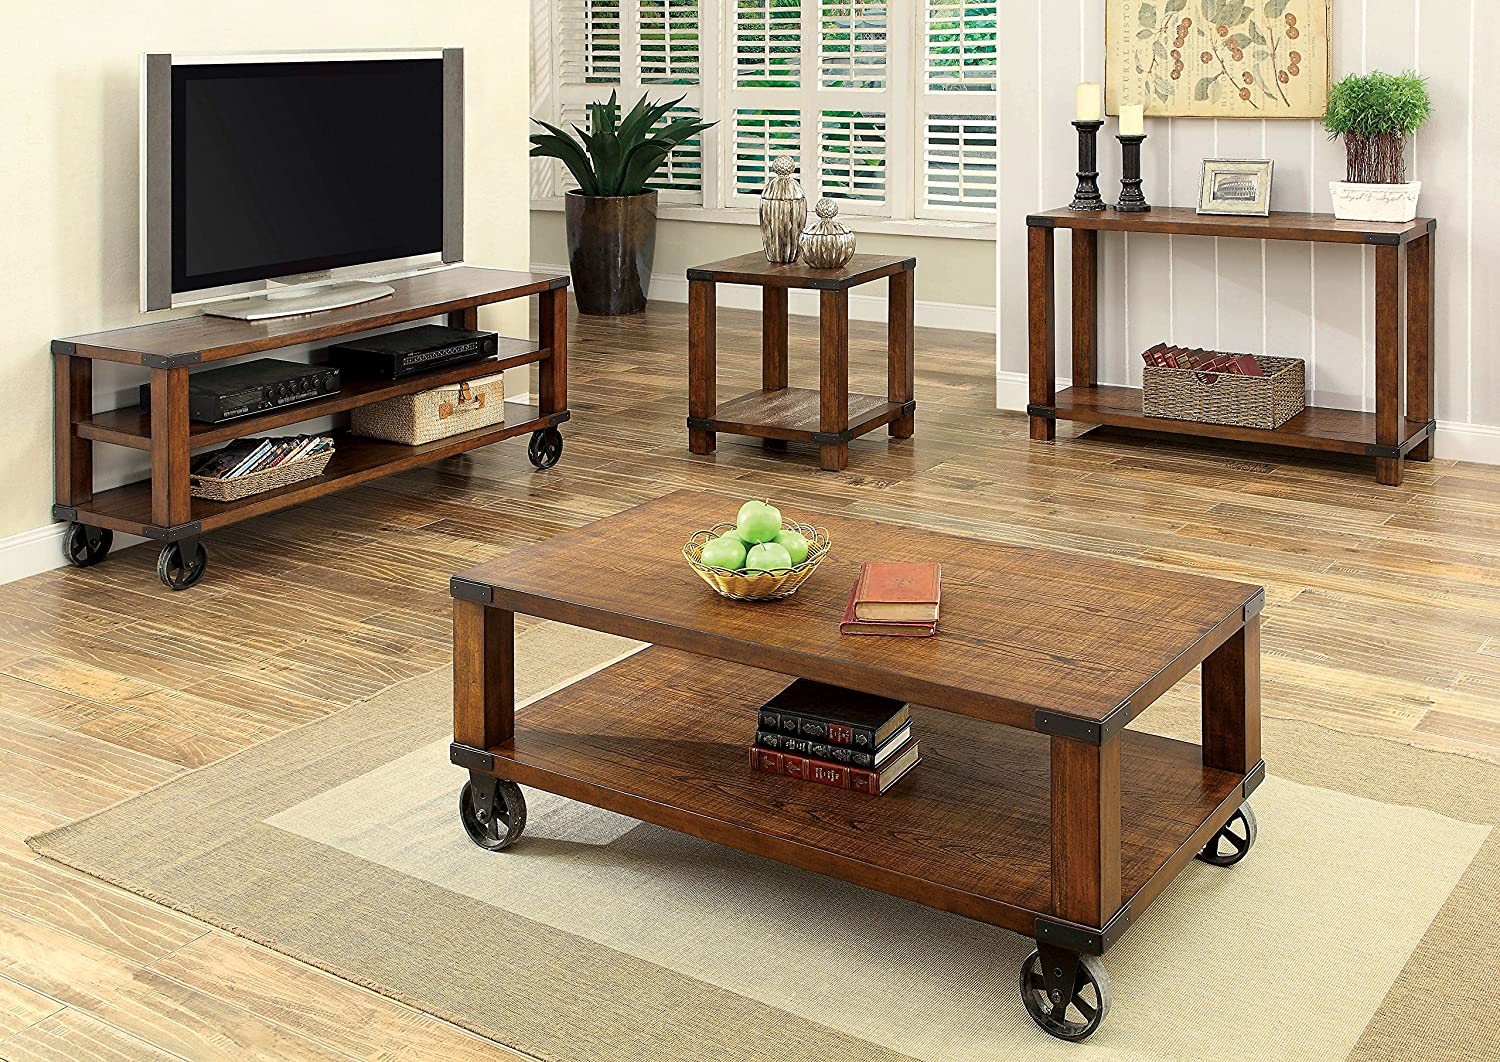 Amazon.com: Furniture Of America Reggio Industrial TV Console, 60 Inch, Dark  Oak: Kitchen U0026 Dining Part 88